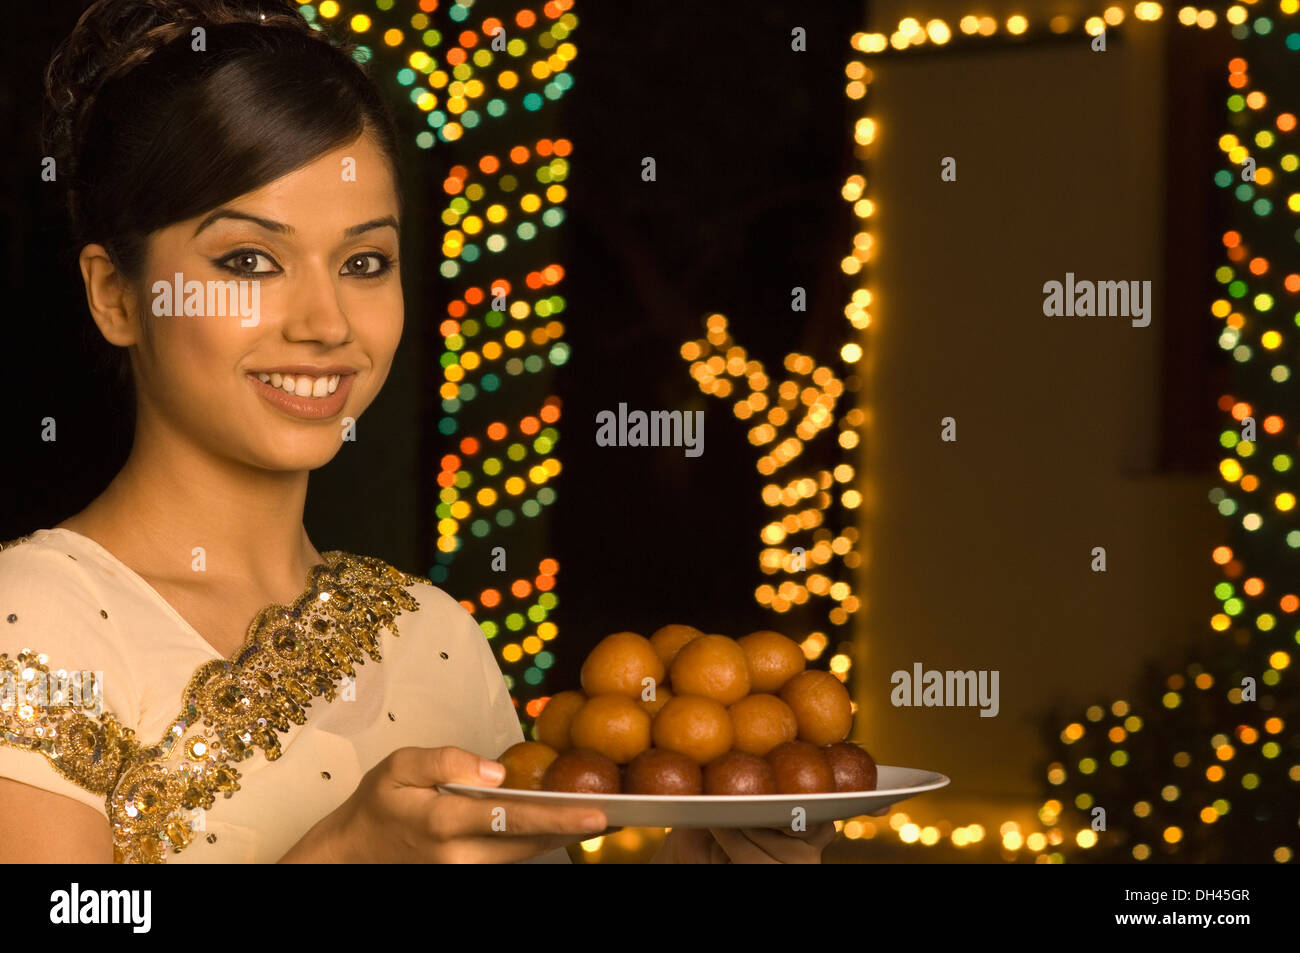 Woman holding sweets in a plate and smiling Stock Photo